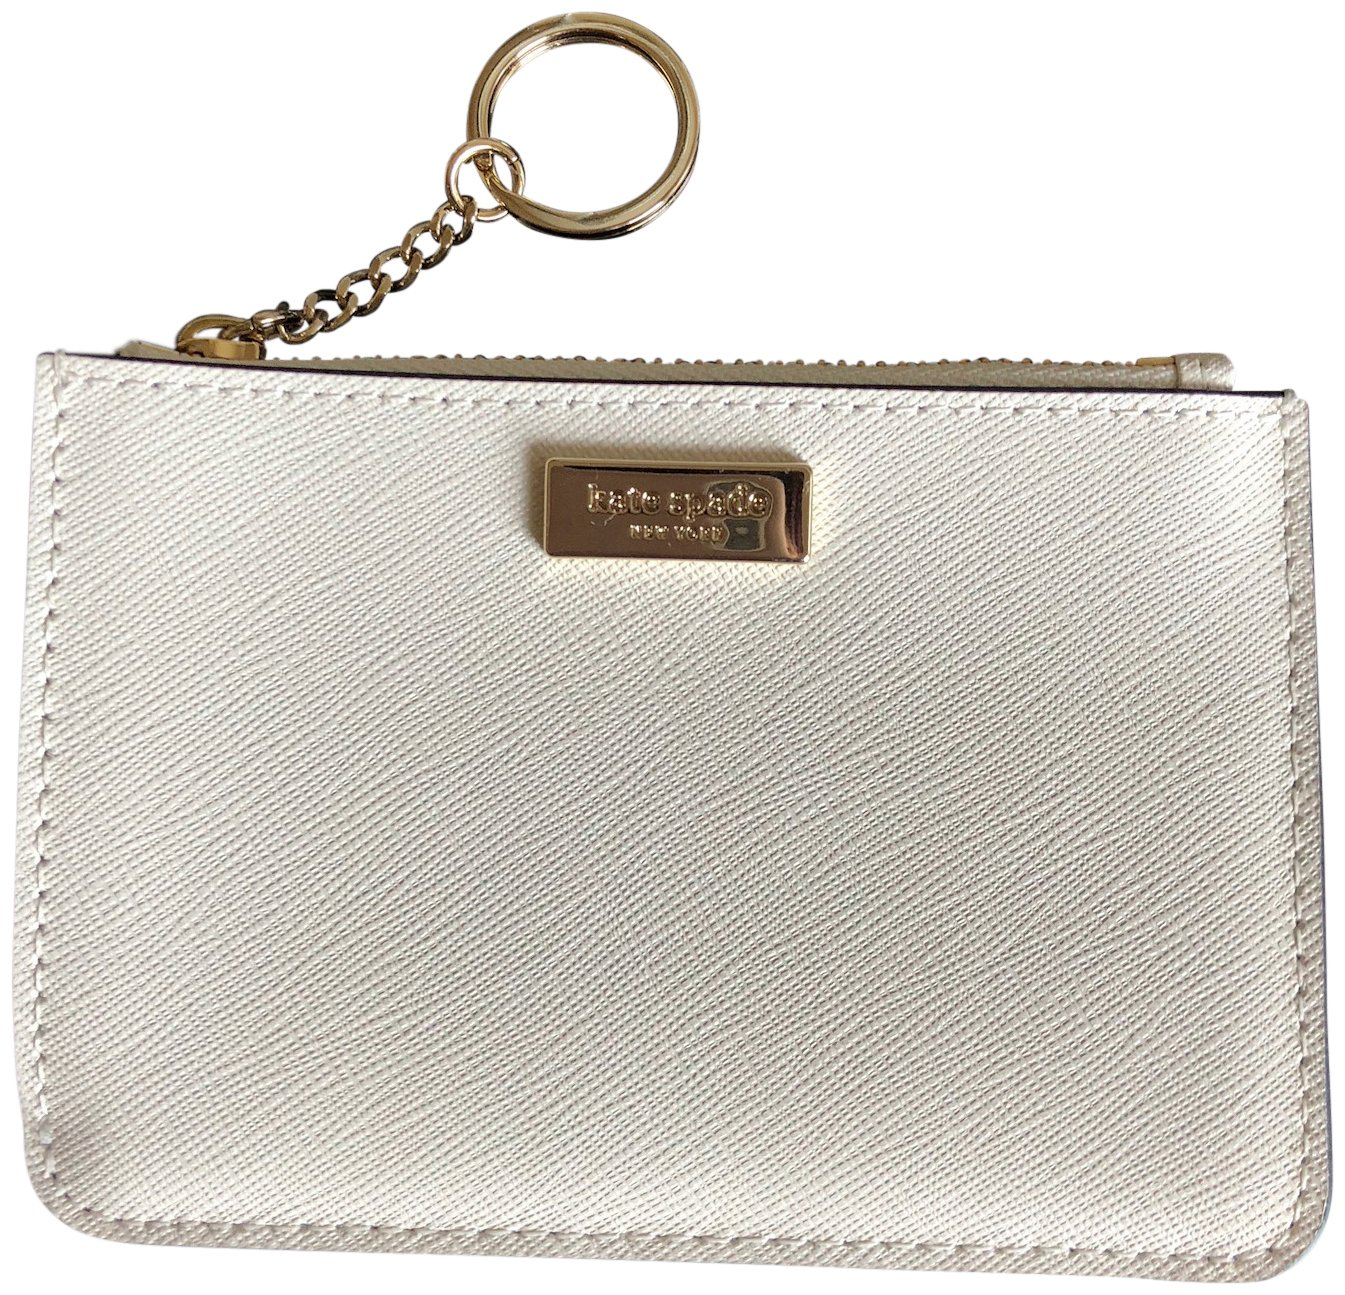 Kate Spade New York Laurel Way Bitsy Card Case W/Keyring Cream ,Beige, Small